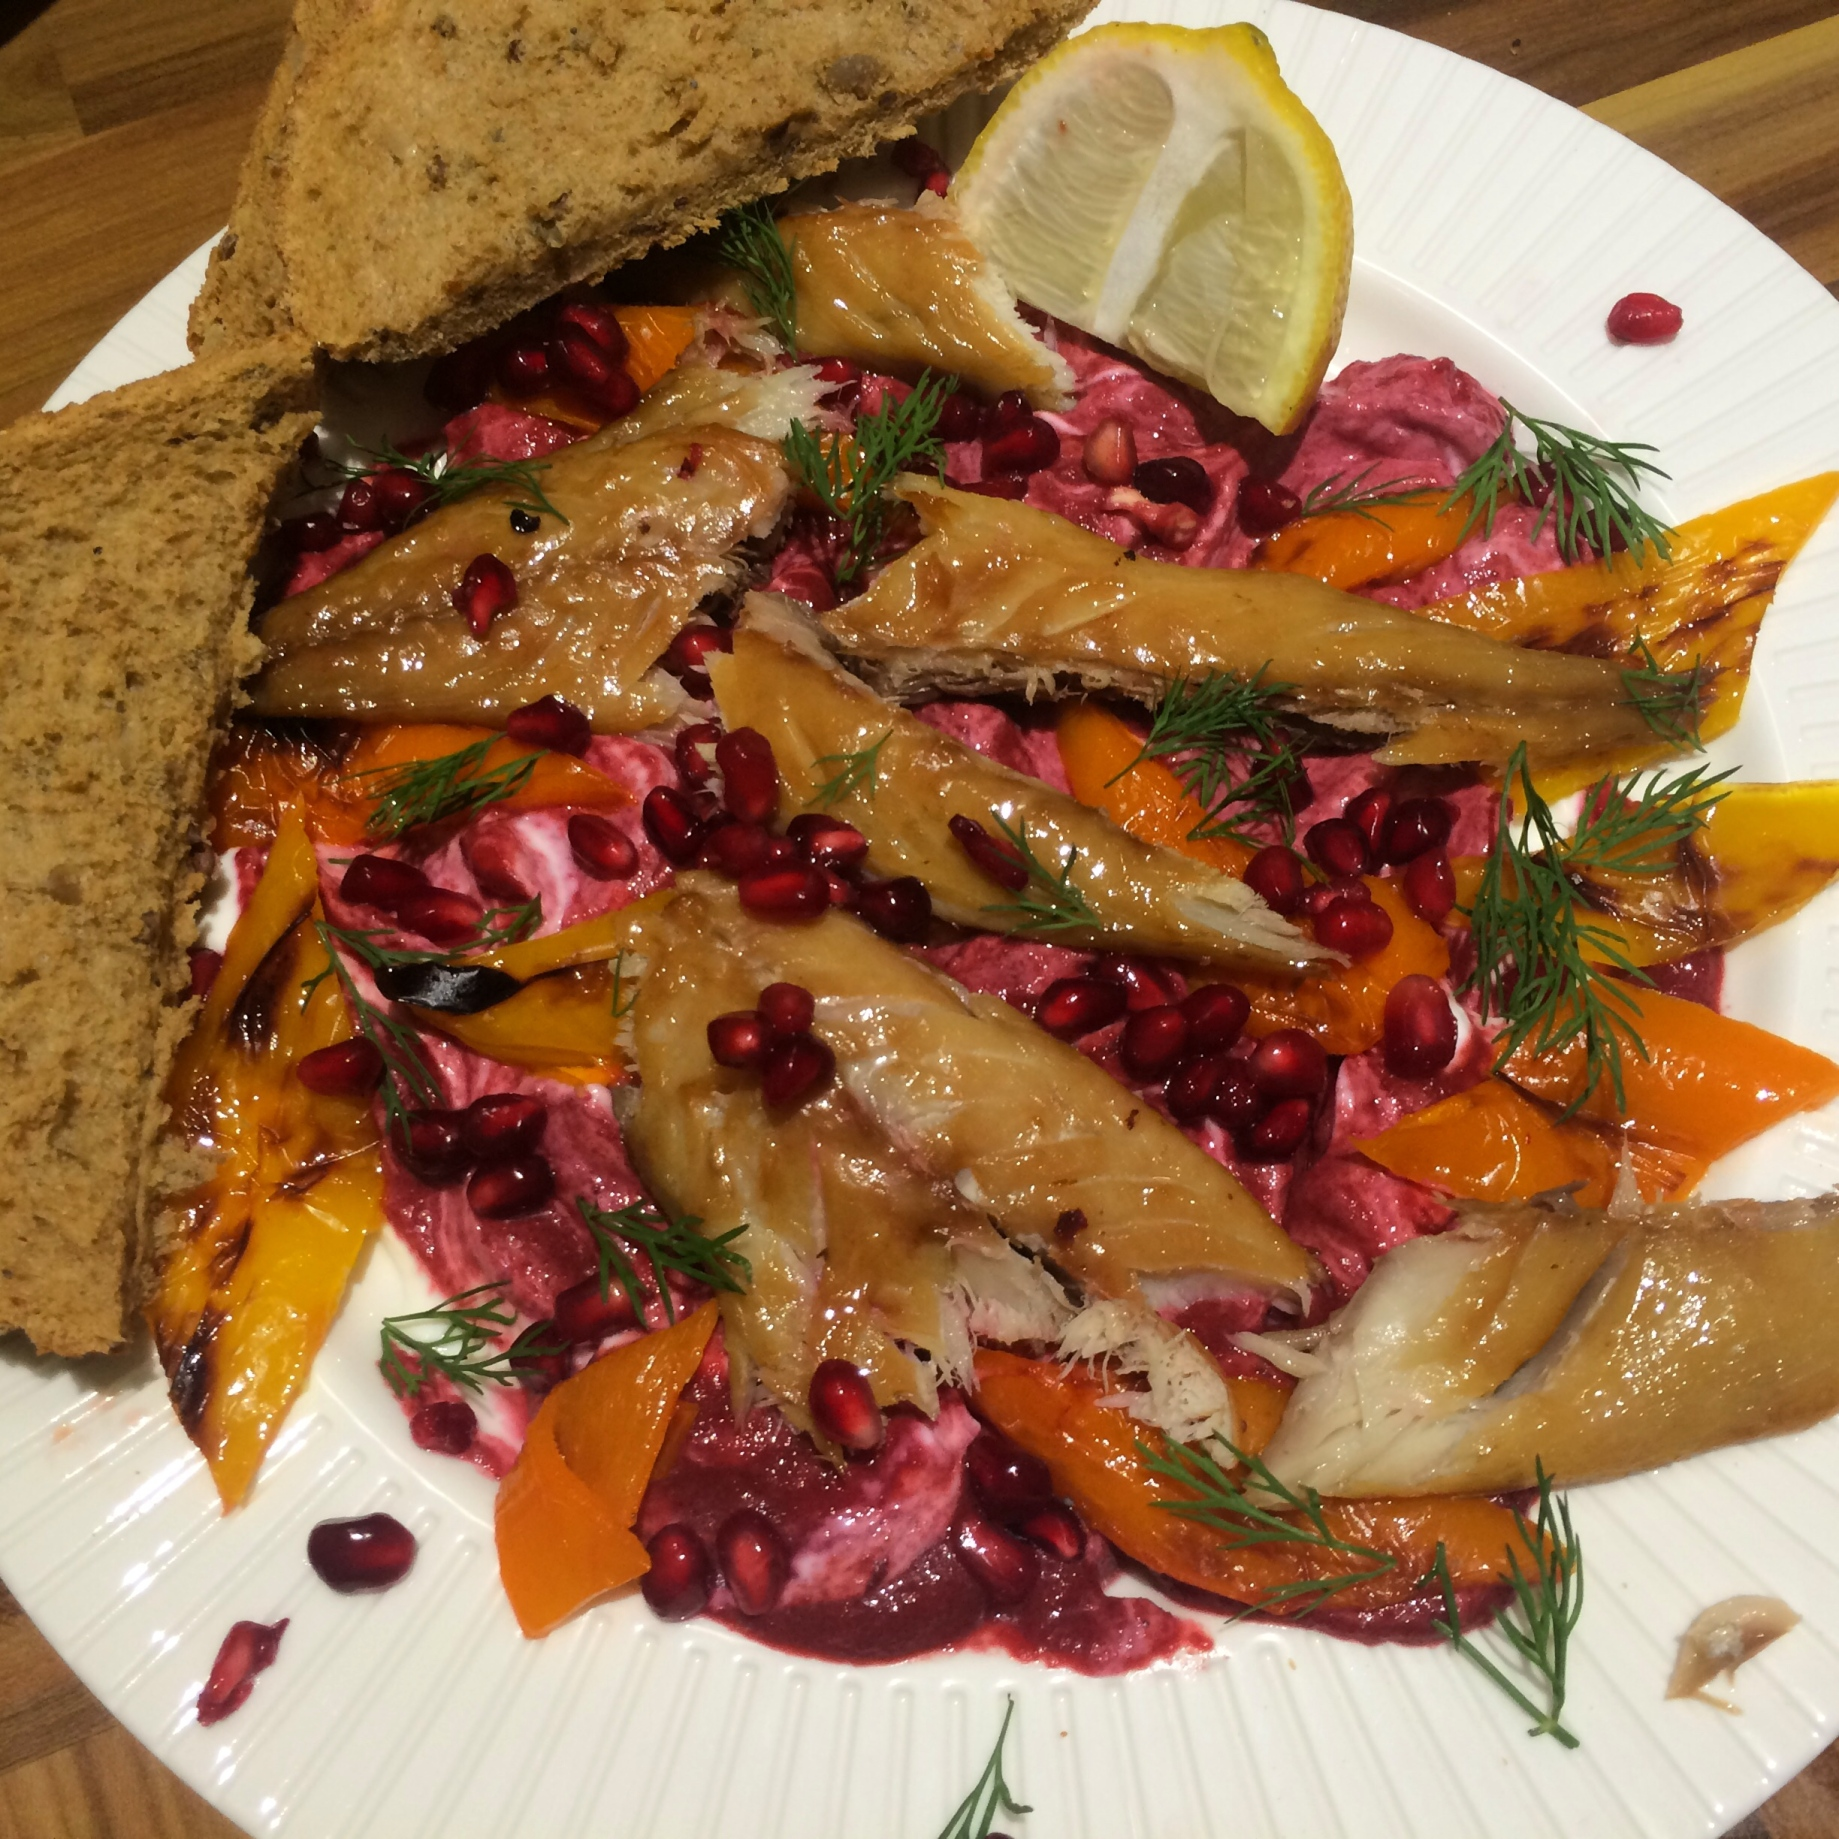 Beetroot and mackerel